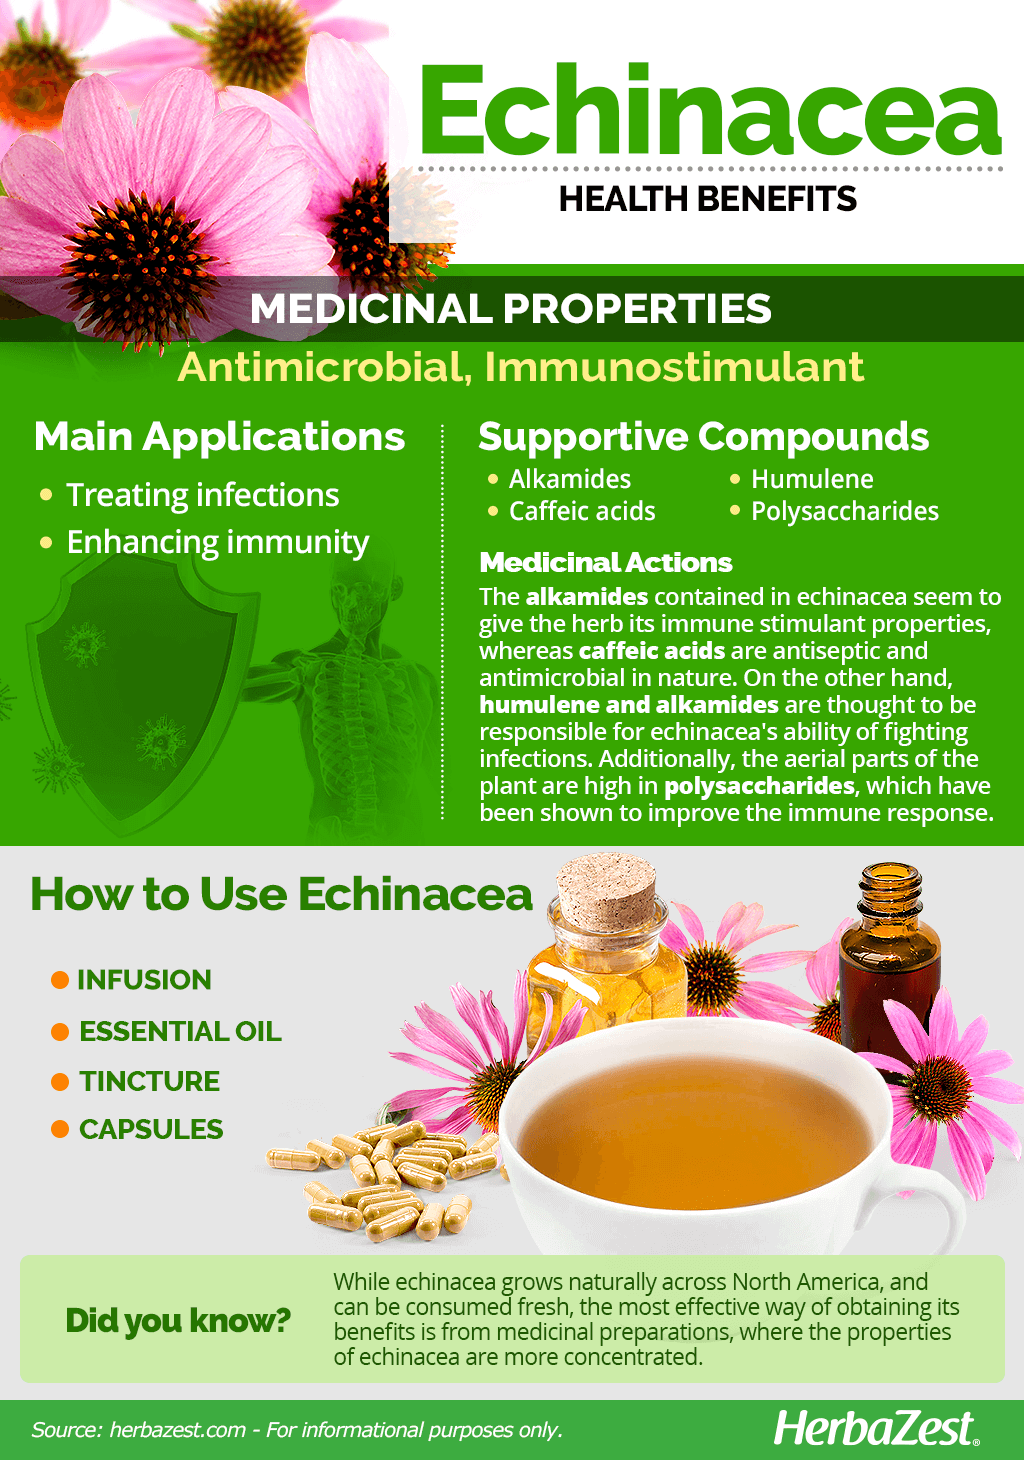 All About Echinacea